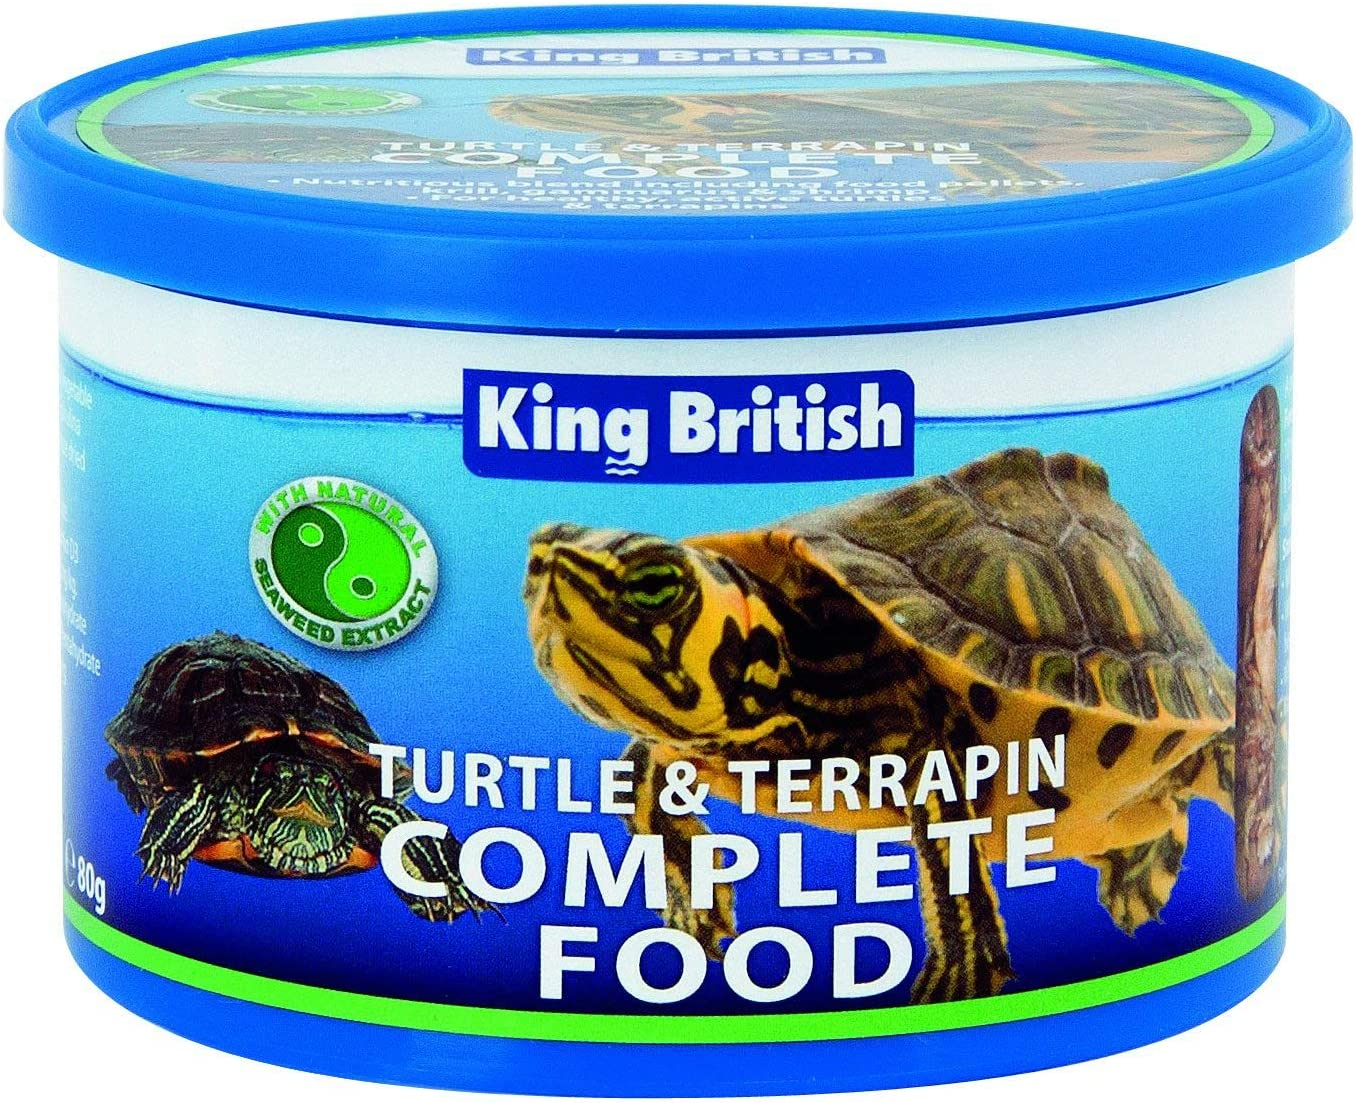 King British Turtle And Terrapin Complete Food - 80g